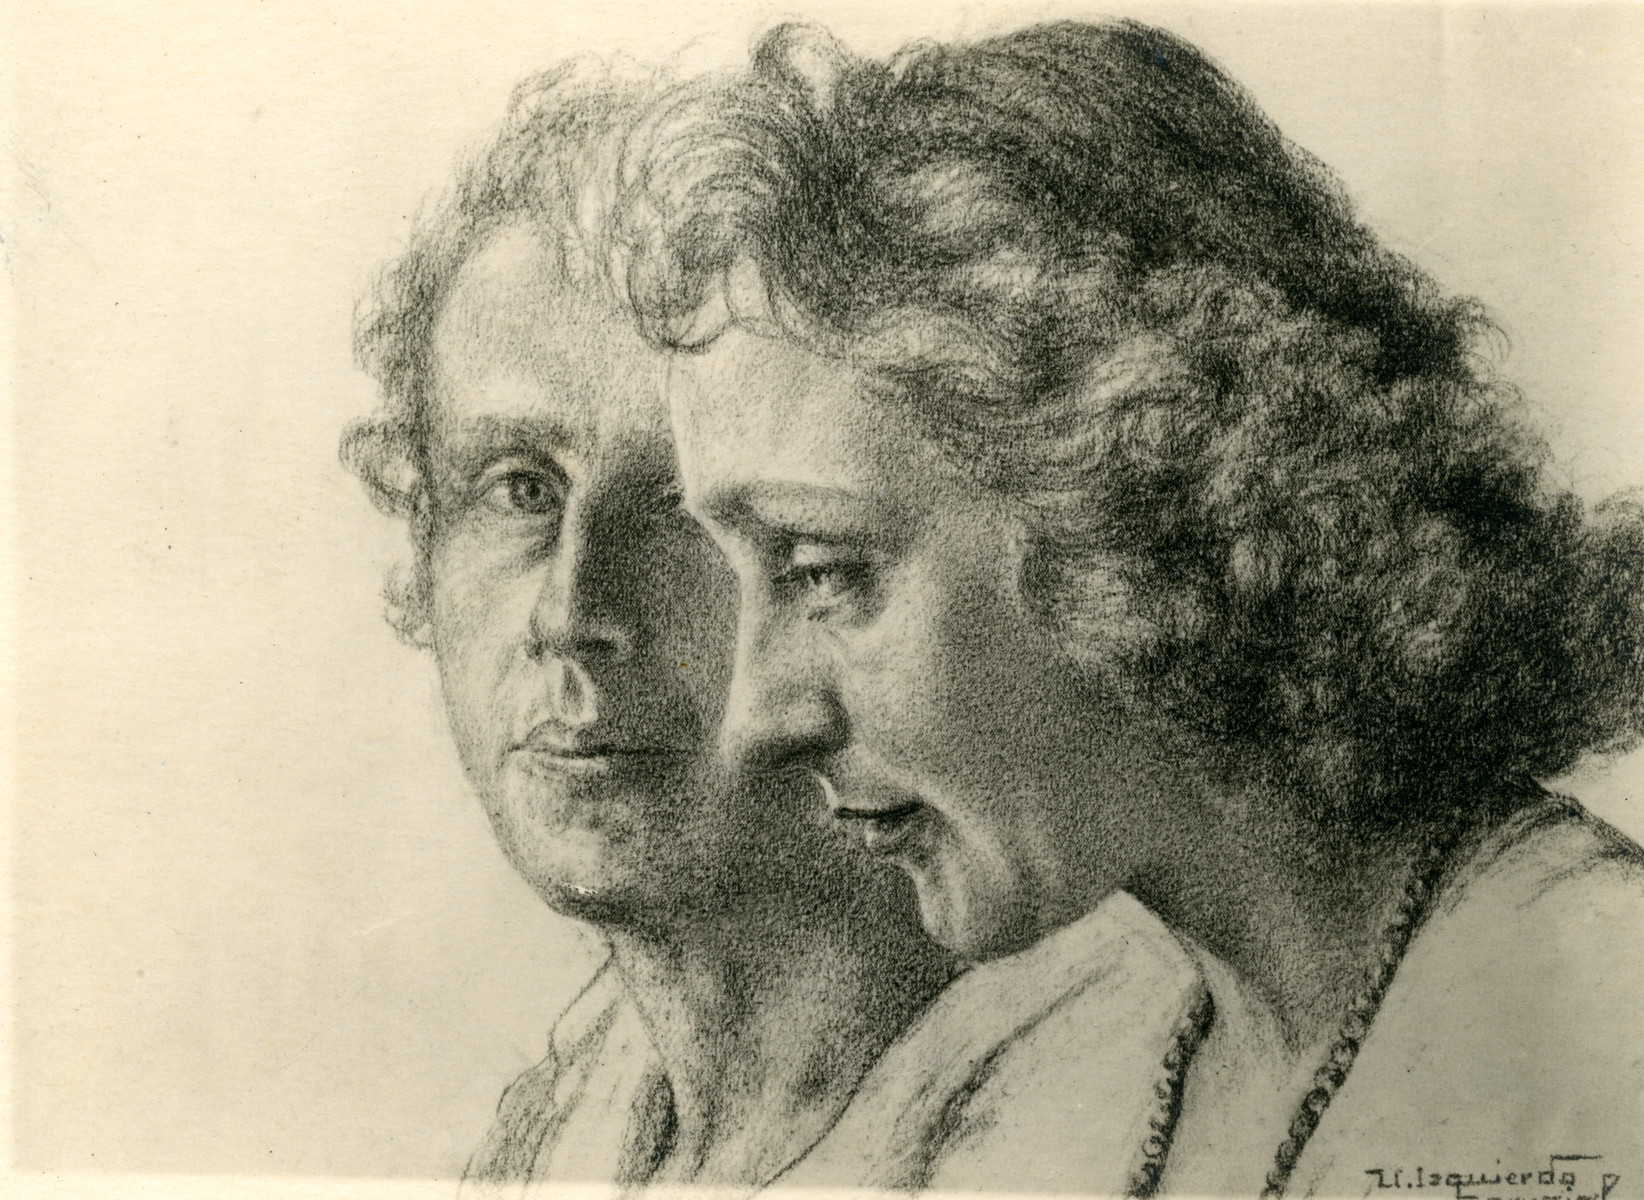 Portrait of Victor Tulman and Hella Bacmeister, drawn in the Gurs internment camp by Spanish prisoner, Isquierdo Carvajal.